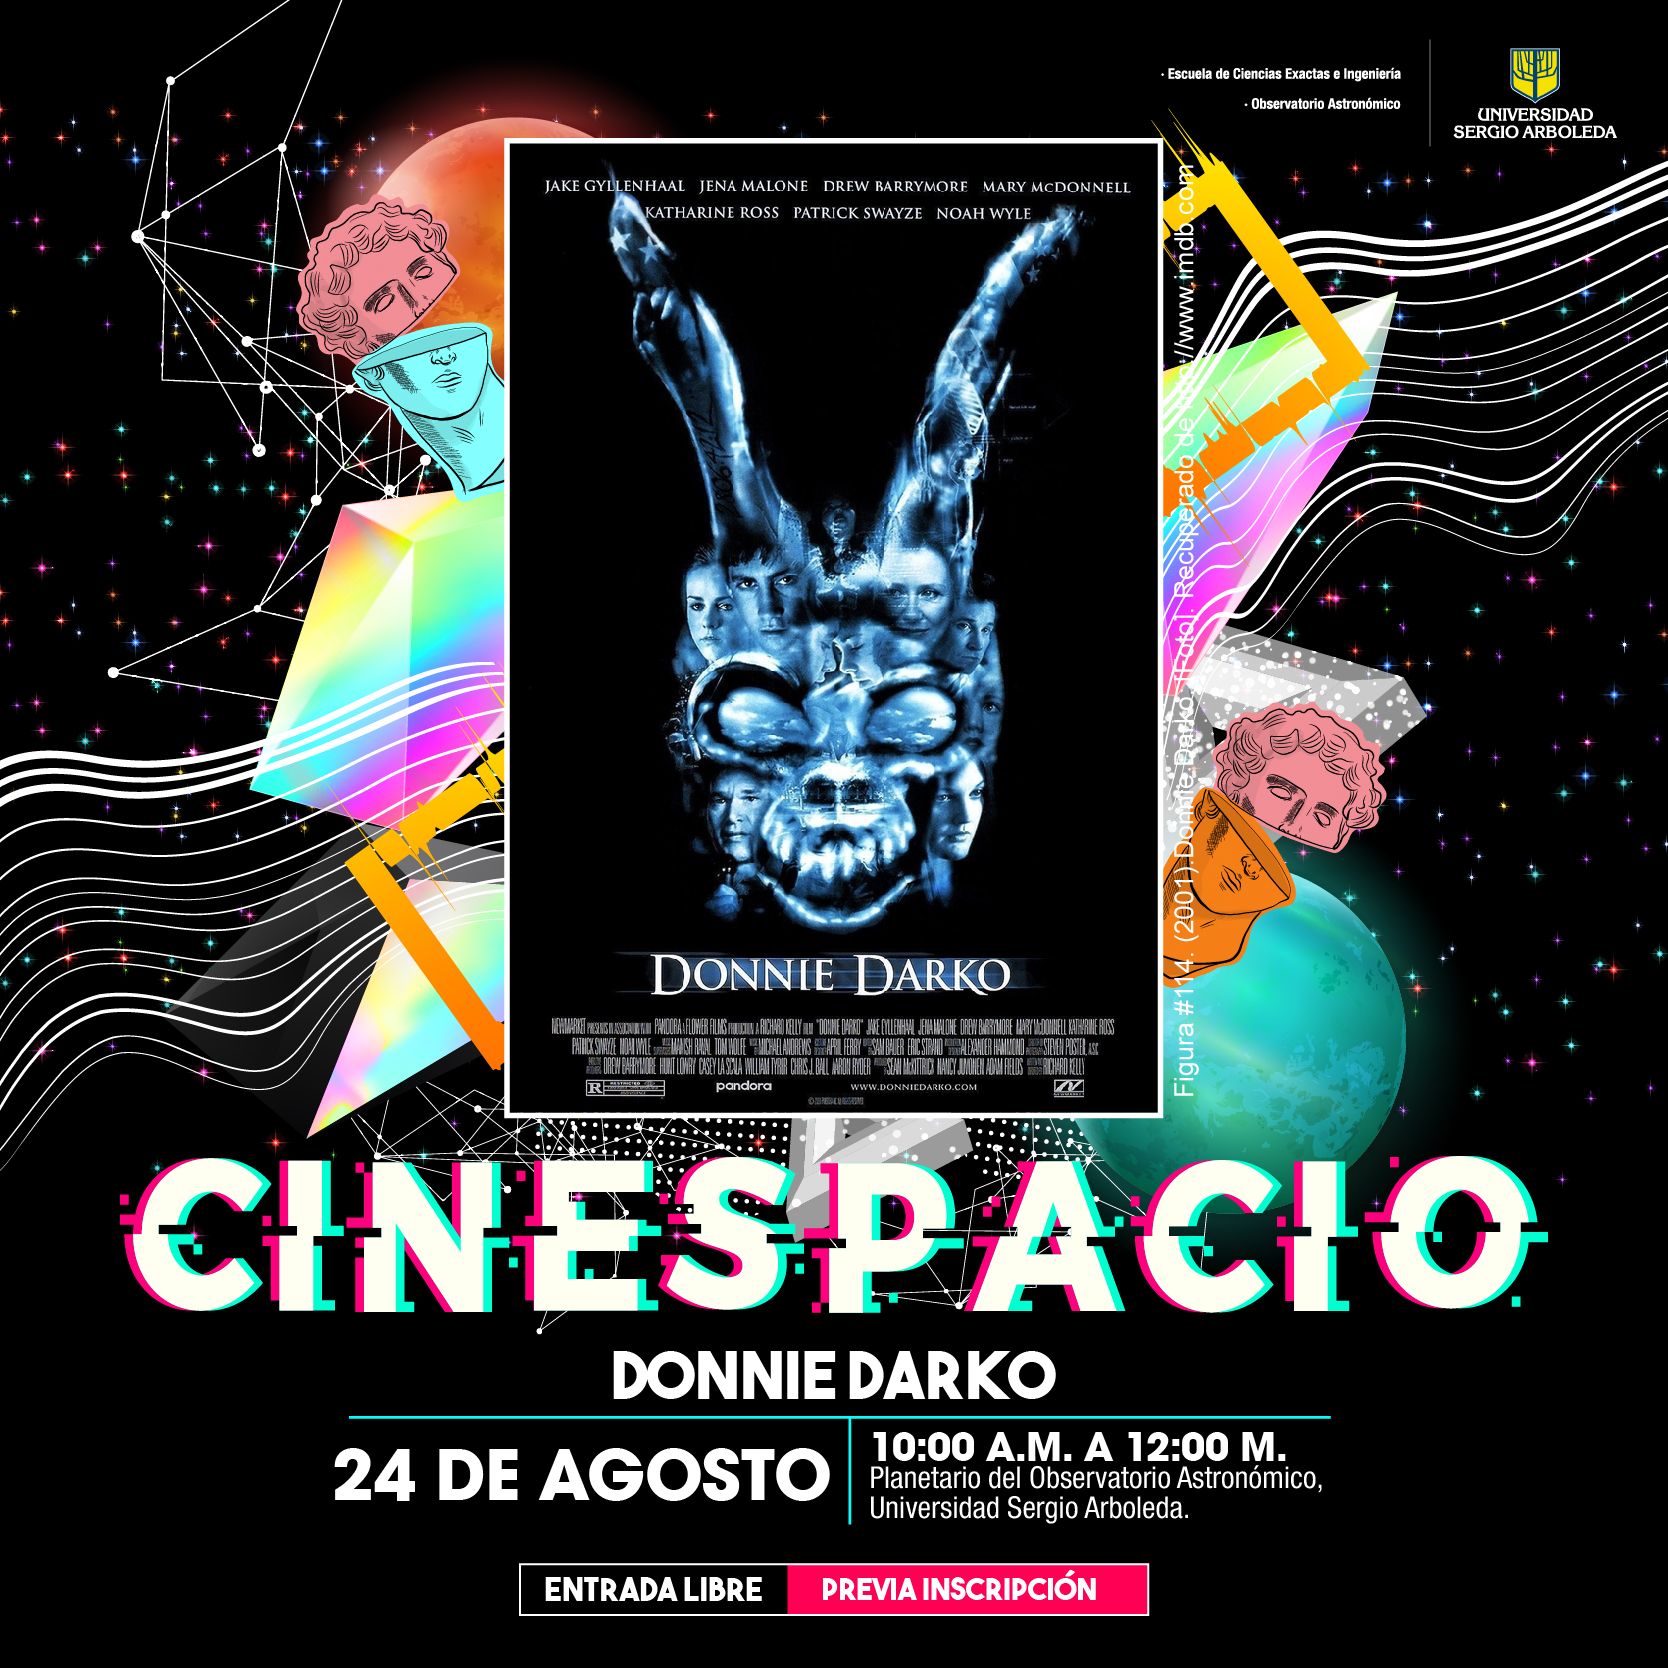 Post_face_insta_cinespacio_agosto-08